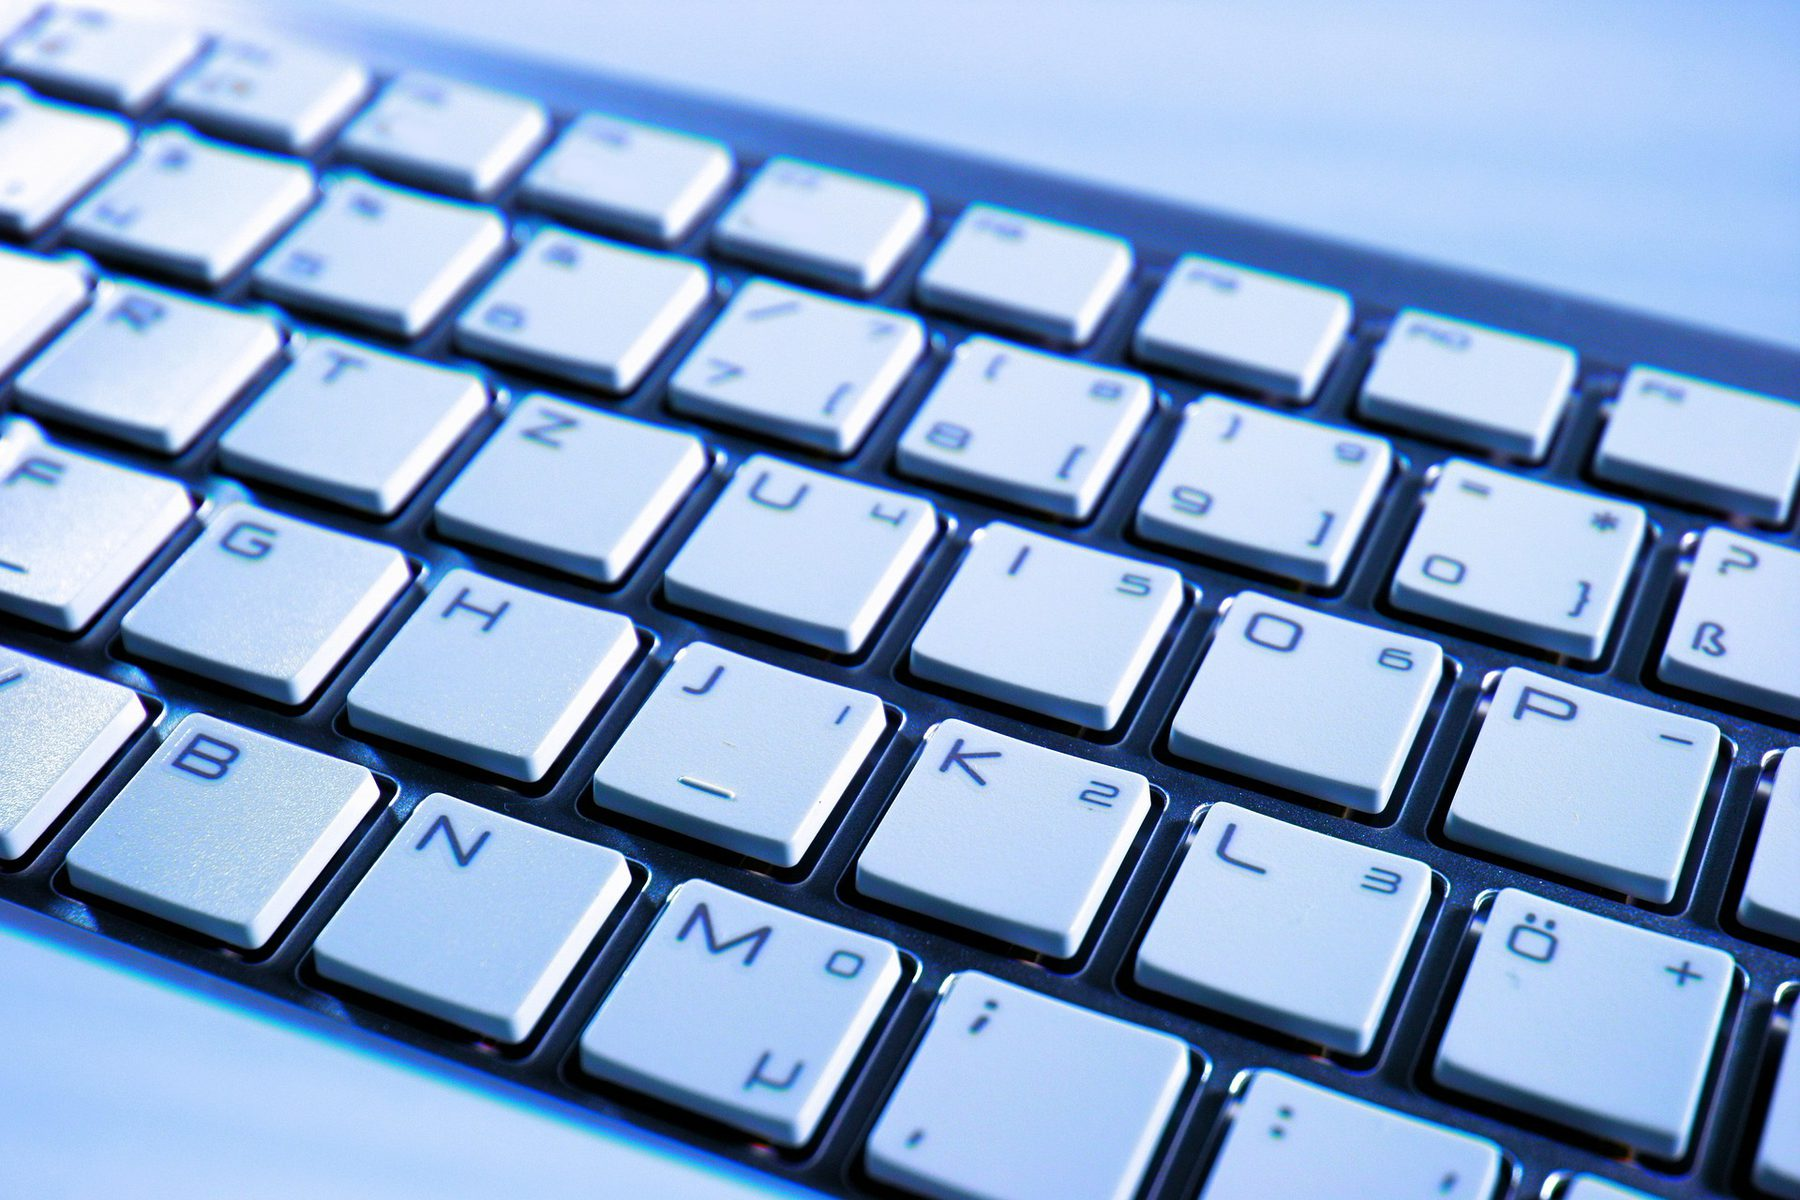 ICT and Computing (Industry Header: Keyboard)